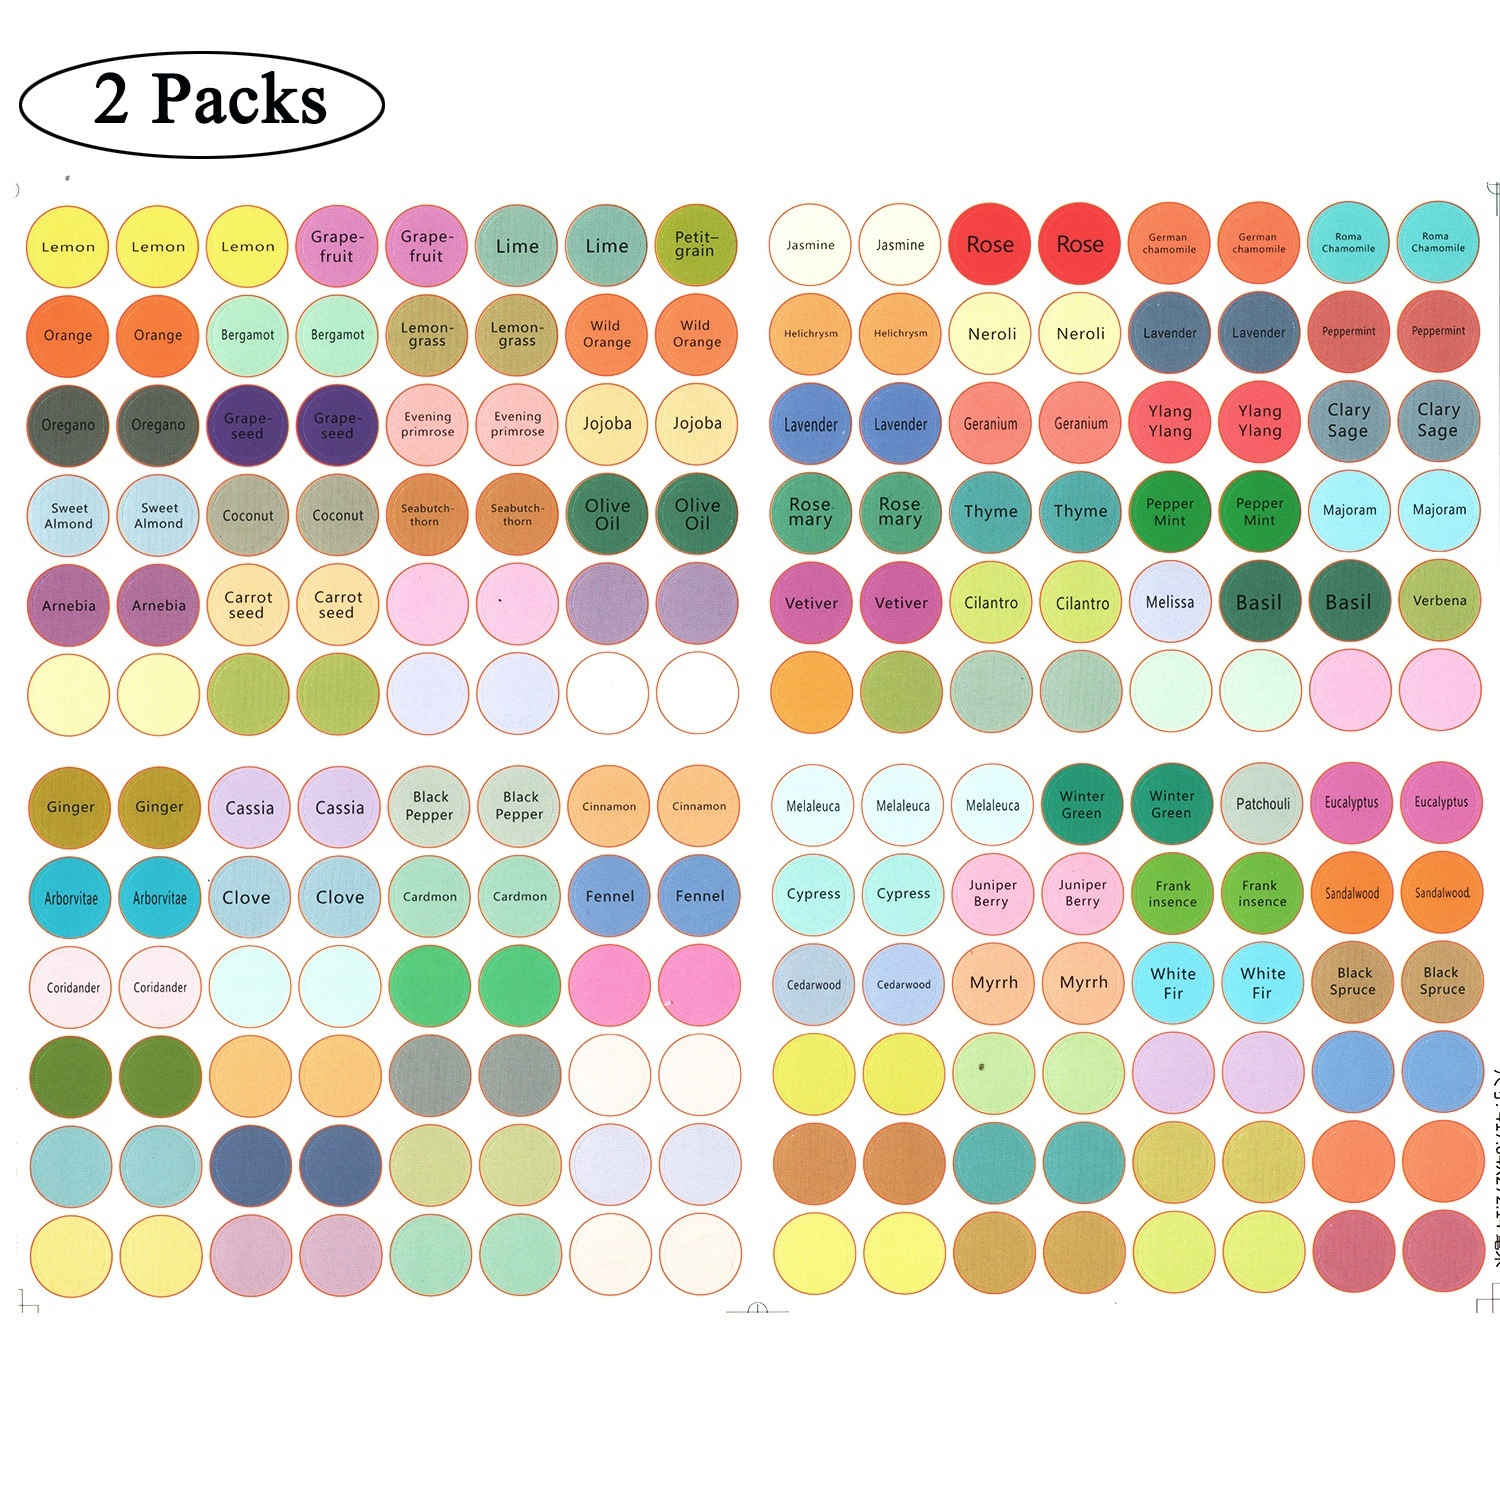 2Pack 192Pcs Paper Waterproof Label Stickers For Essential Oil Bottle Cap Color Coded For DoTERRA Crystal Angel